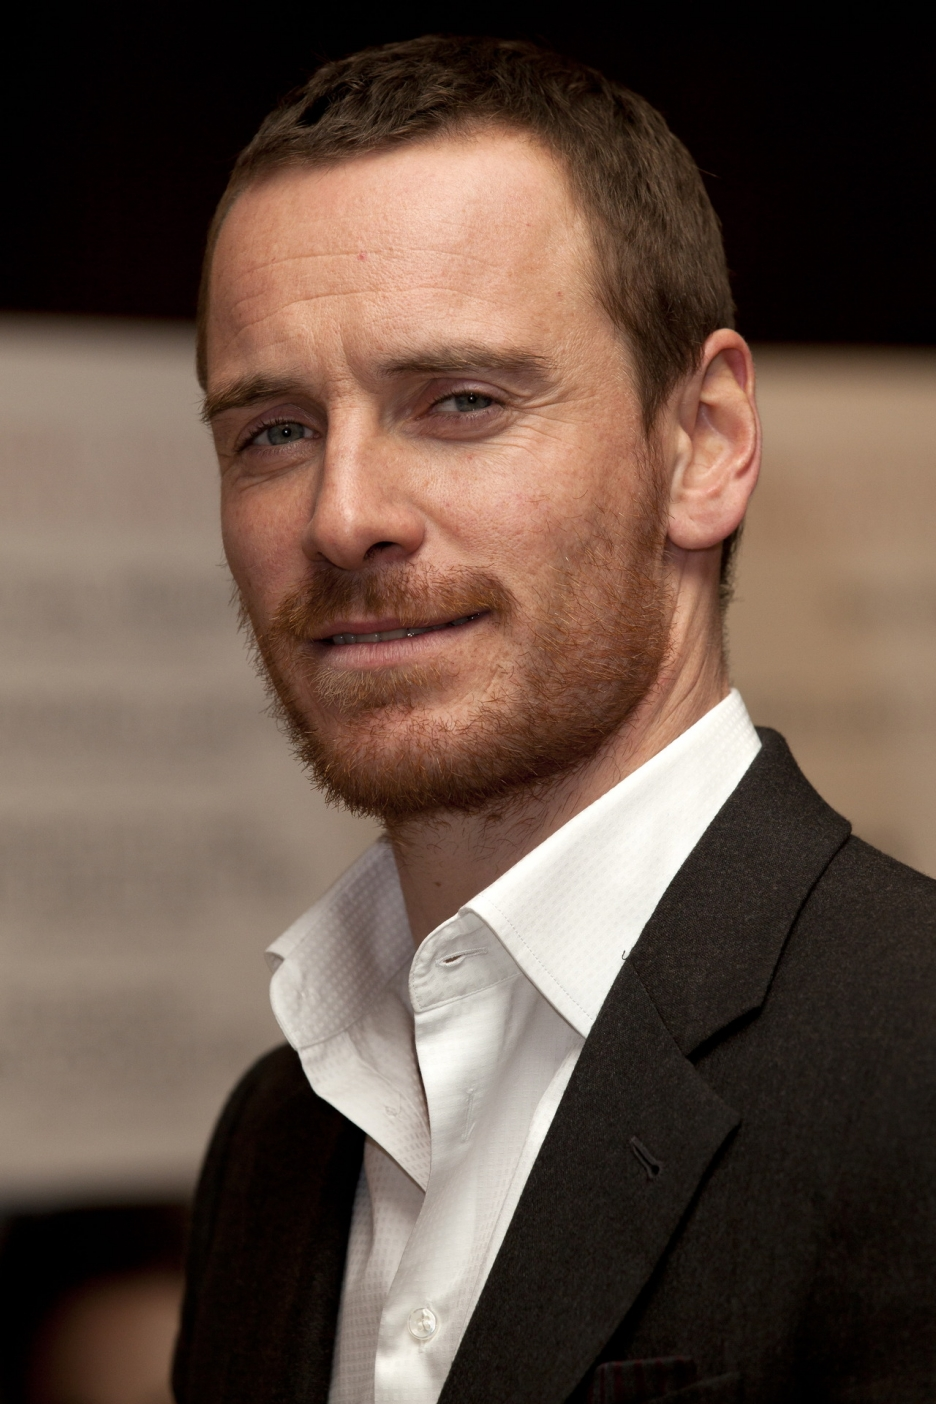 Image - Michael-fassbender.jpg | Twilight Saga Wiki | Fandom powered ... Breakingdawn